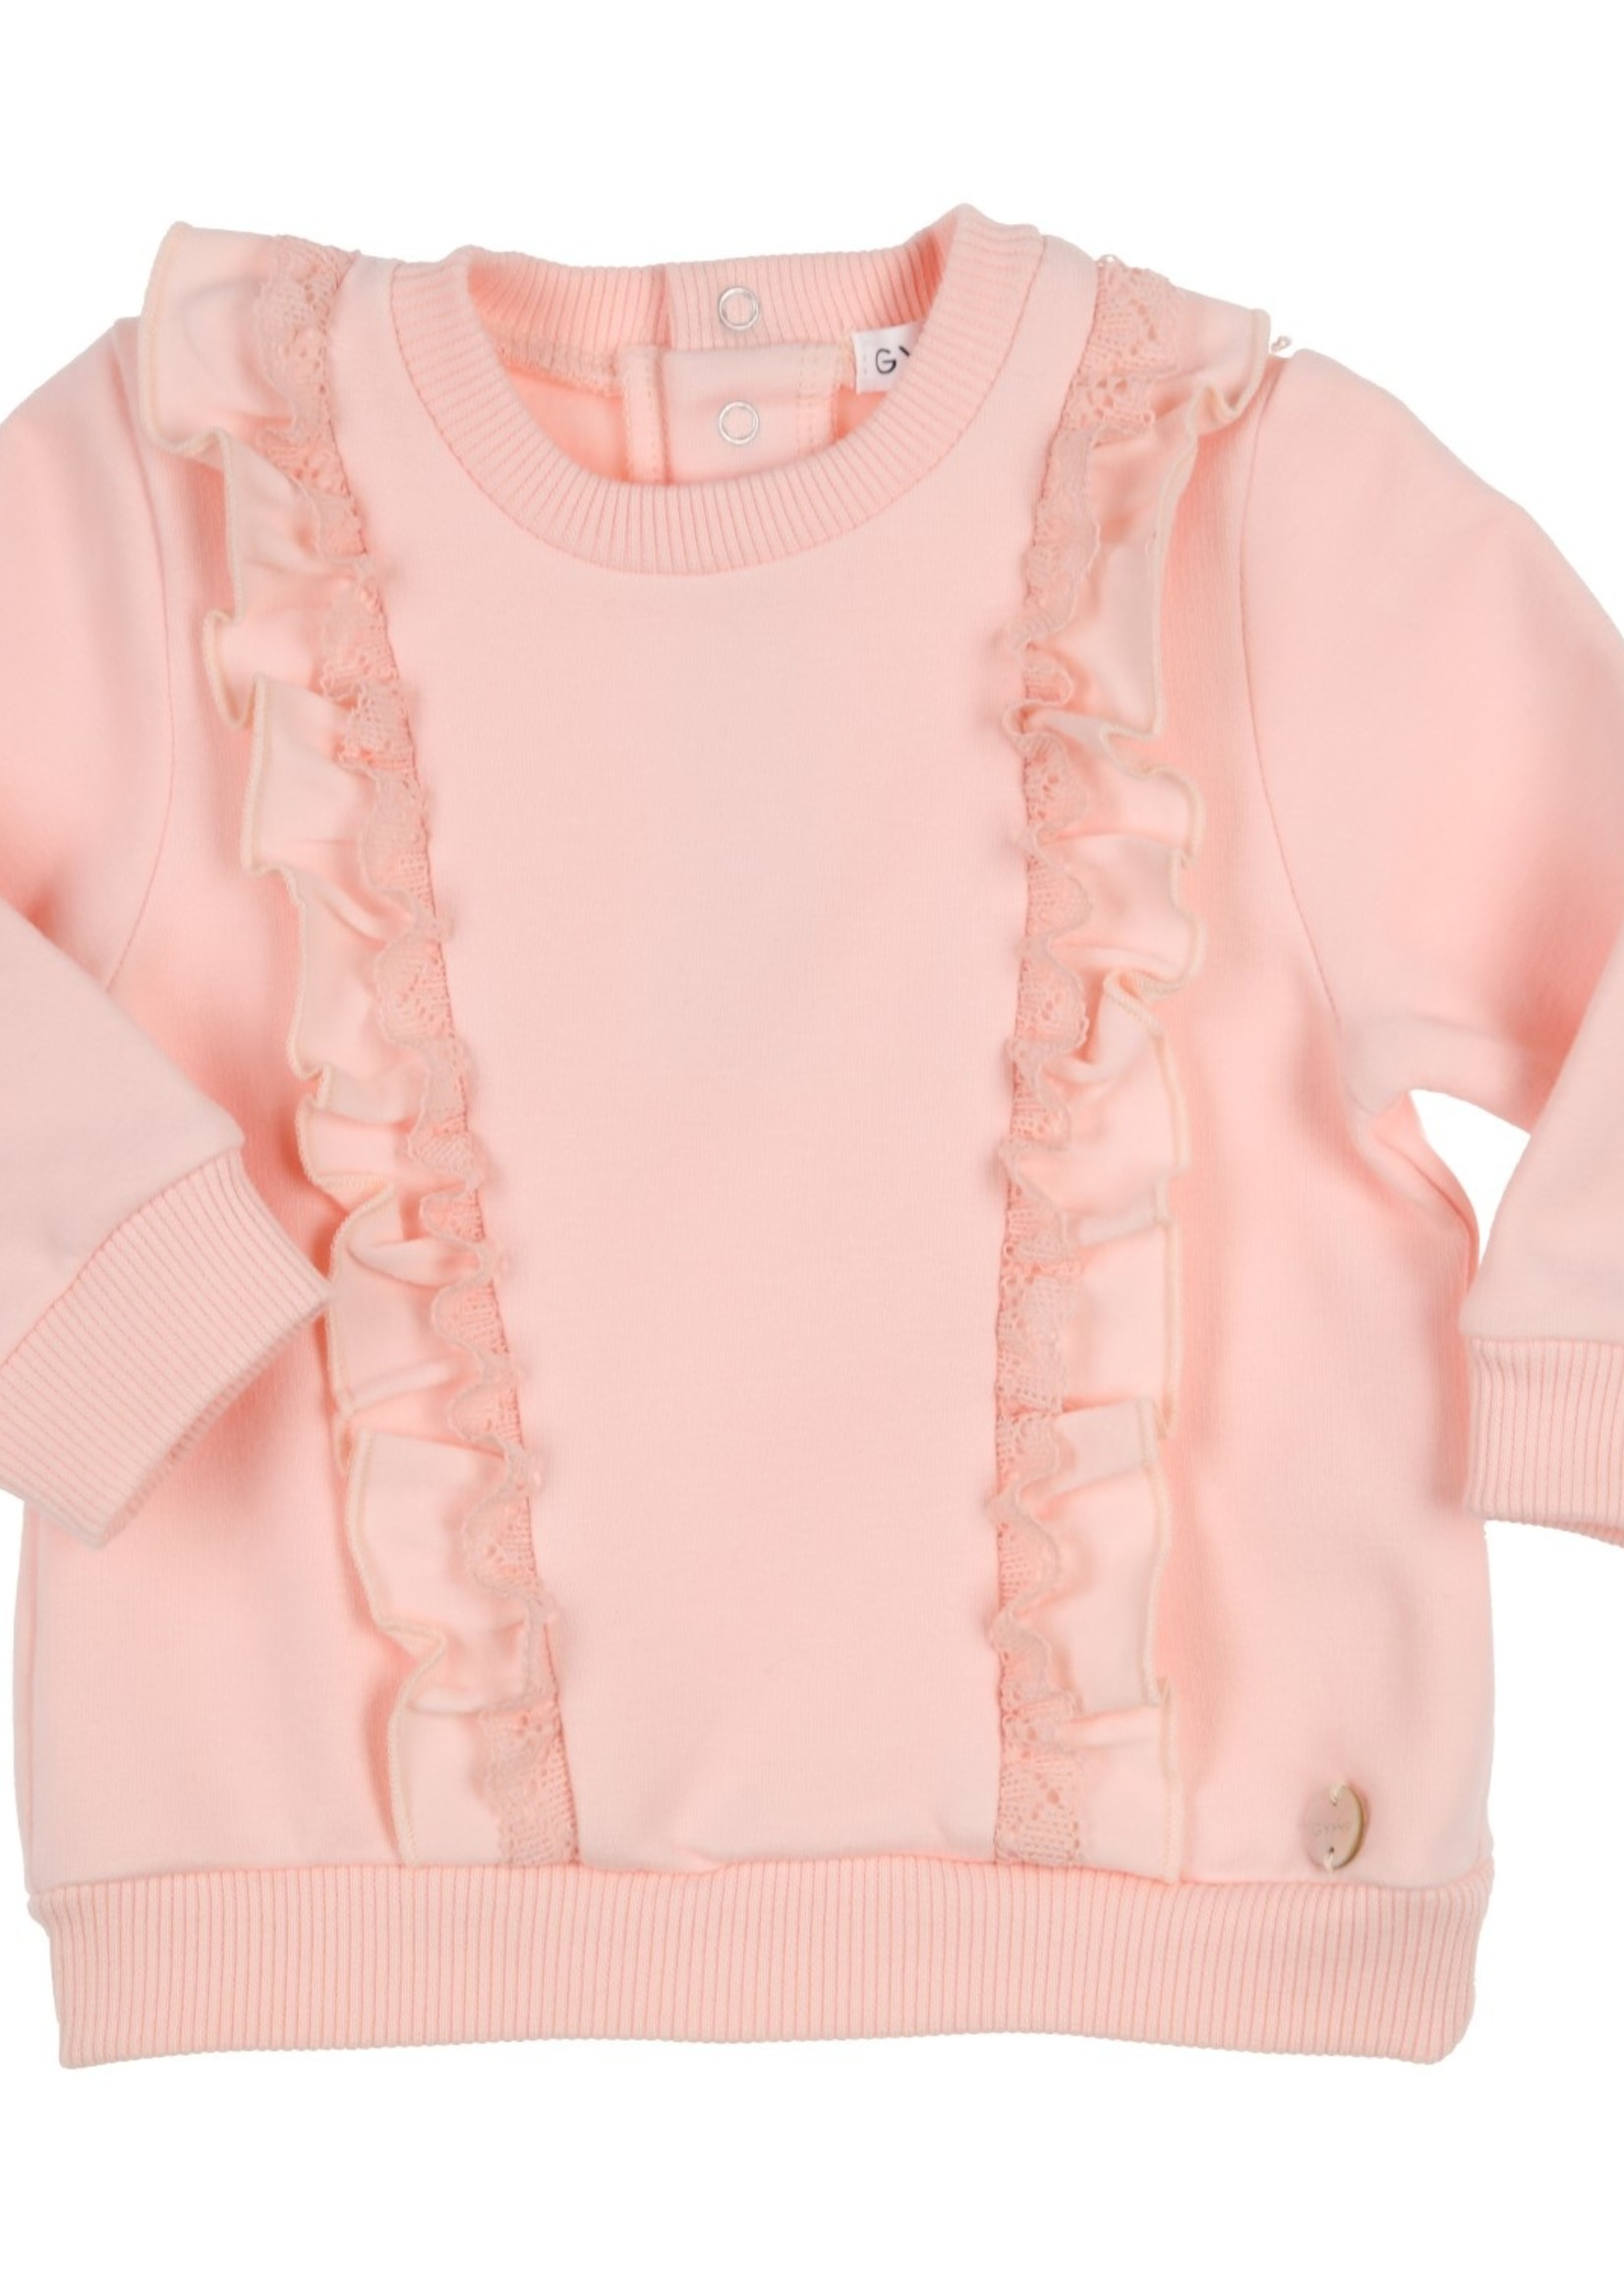 Gymp Gymp sweater flounces and lace vieux rose